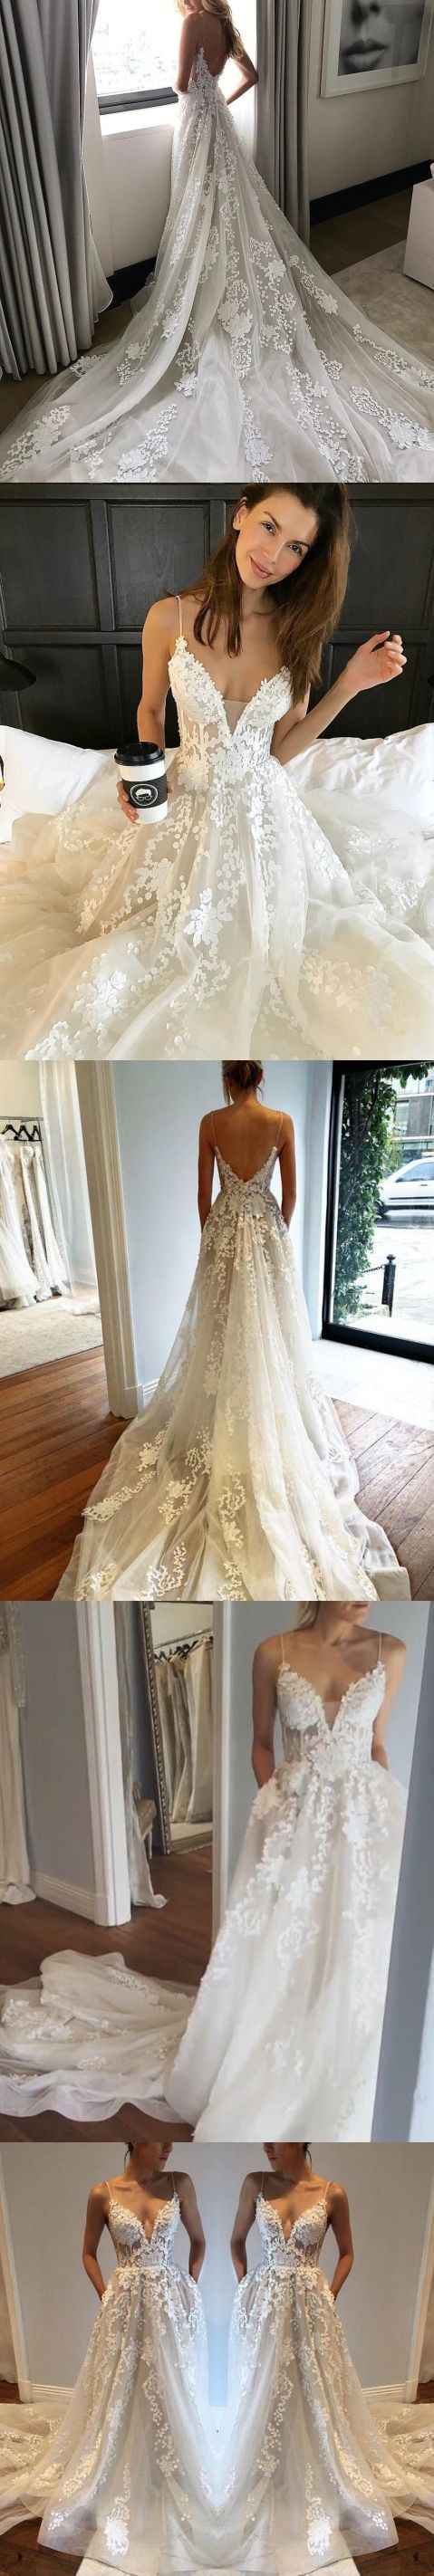 wedding dresses 2018,big wedding dresses,wedding dresses lace,wedding dresses simple,wedding dresses princess,modest wedding dresses,wedding dresses a line  #annapromdress #weddingdress #wedding #bridalgown #BridalGowns #cheapweddingdress #fashion #style #dance #bridal